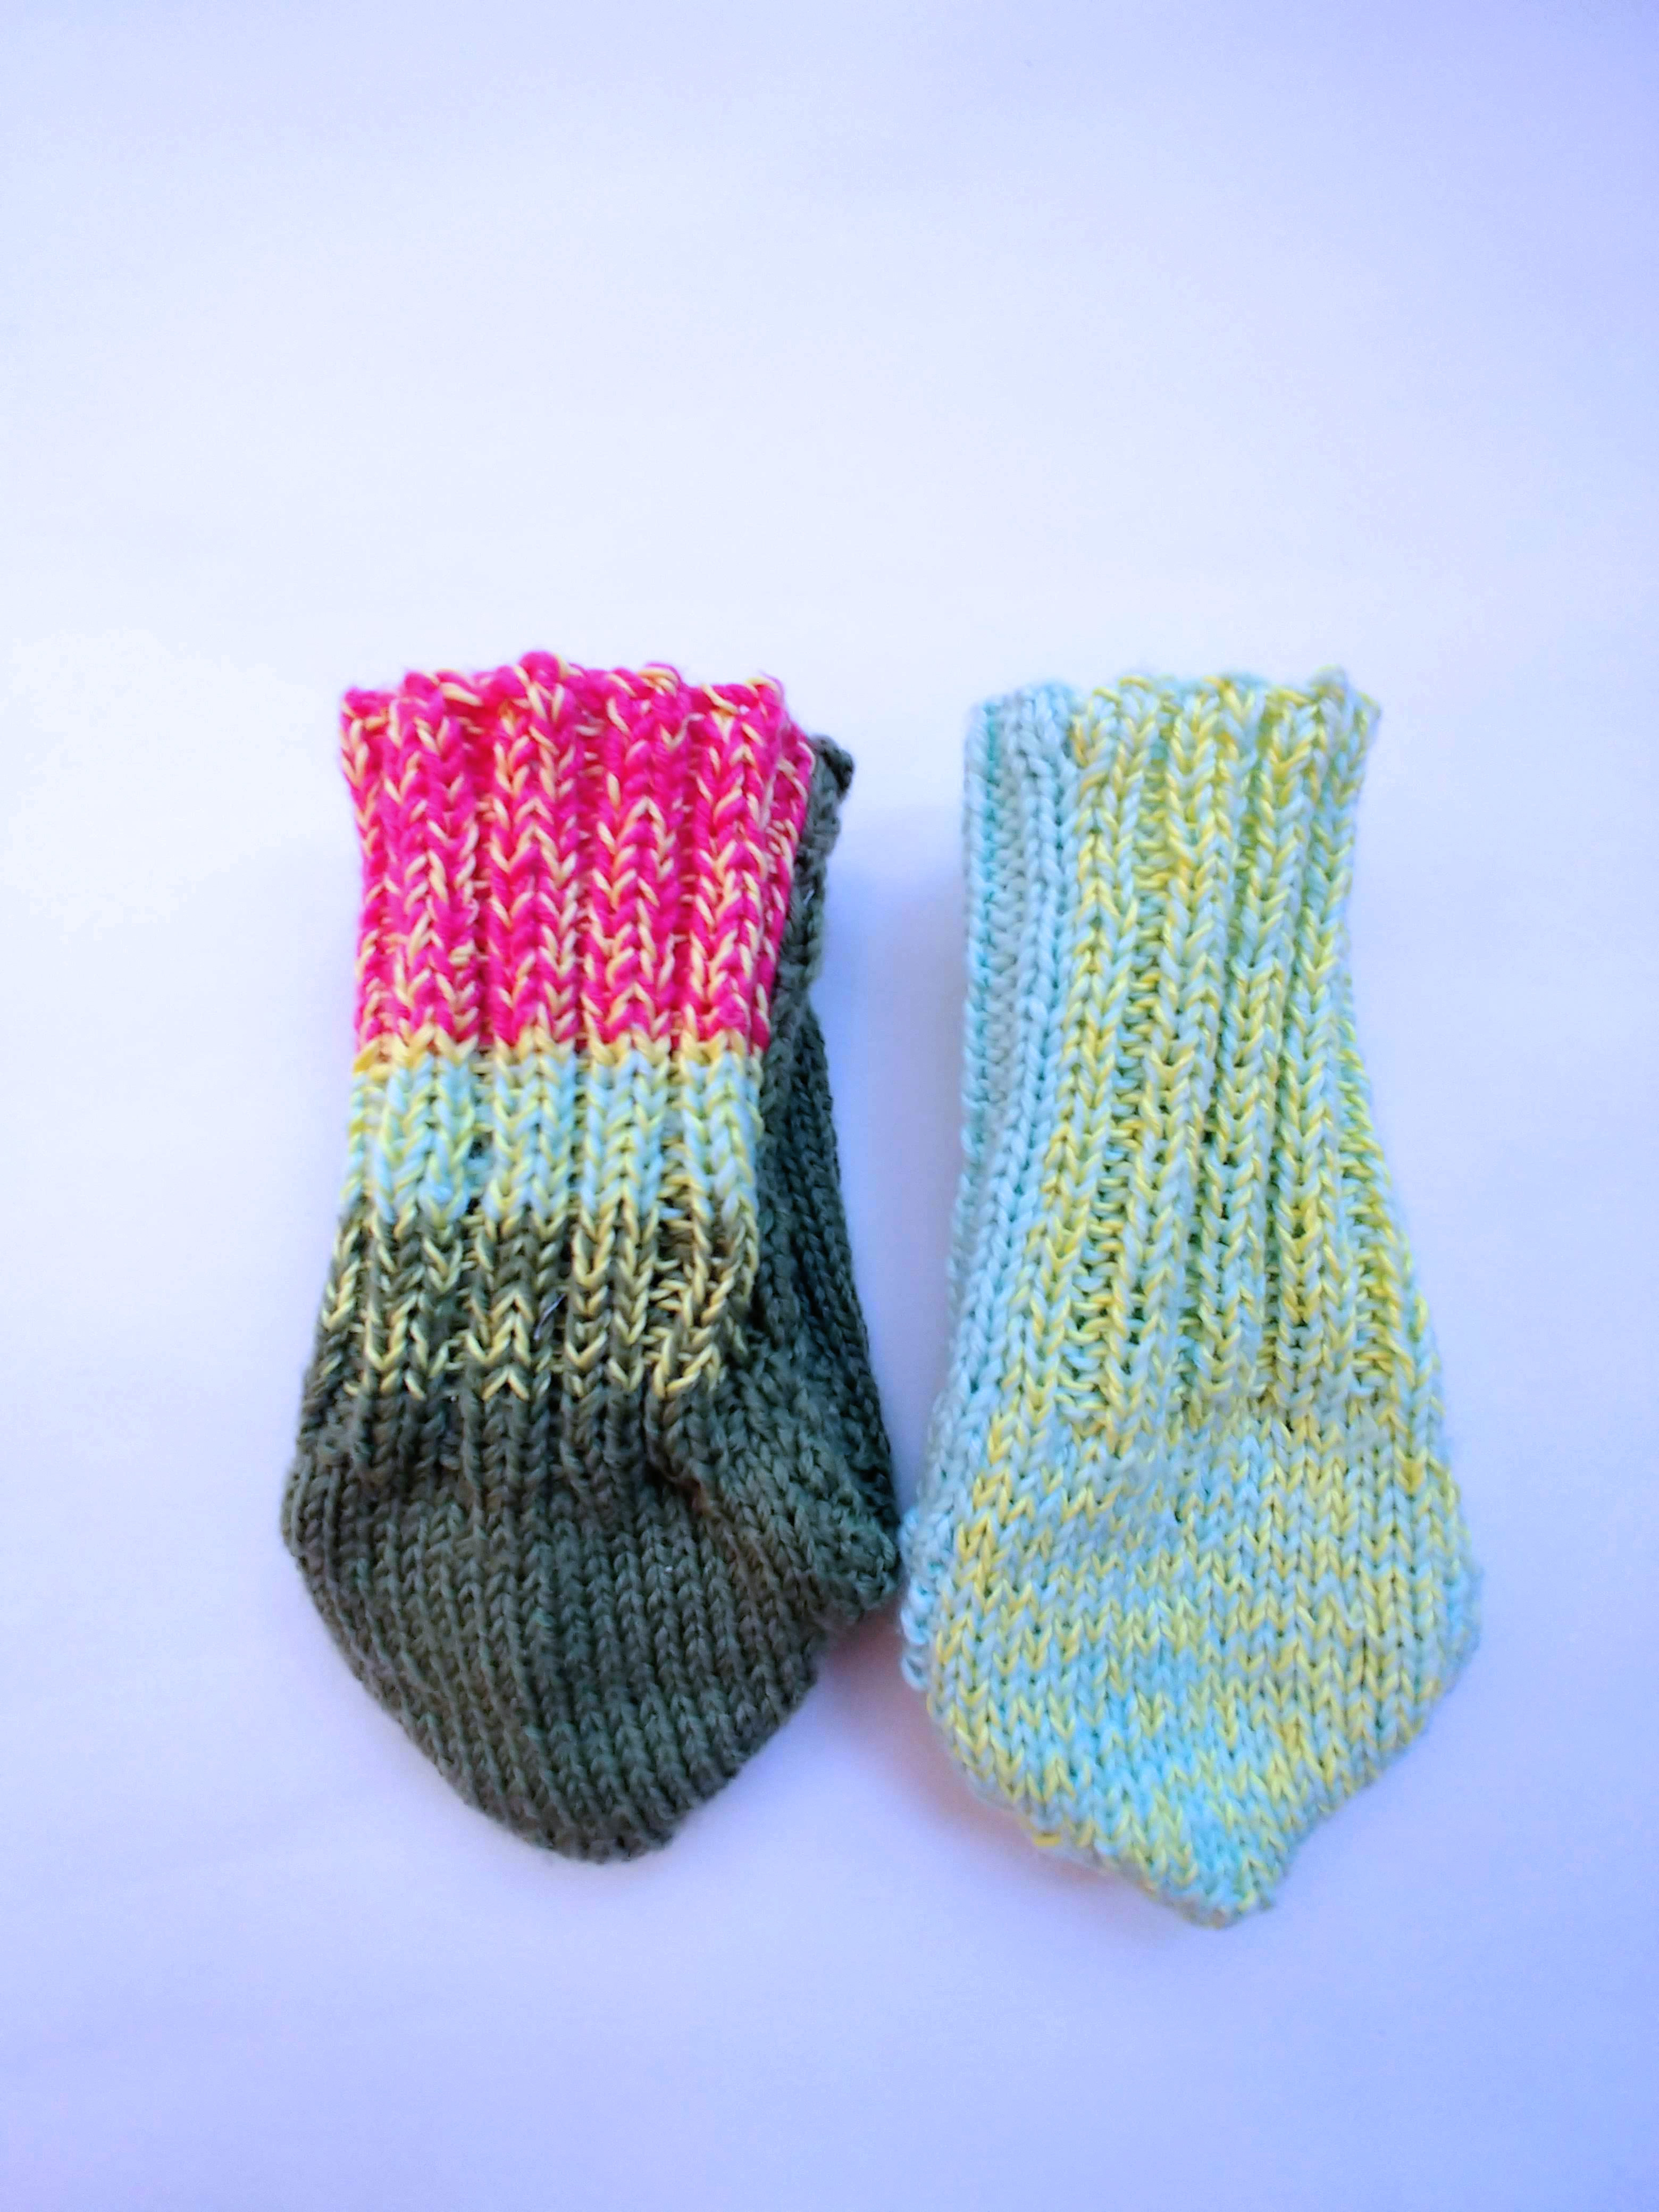 Back of Socks - Blue and Green